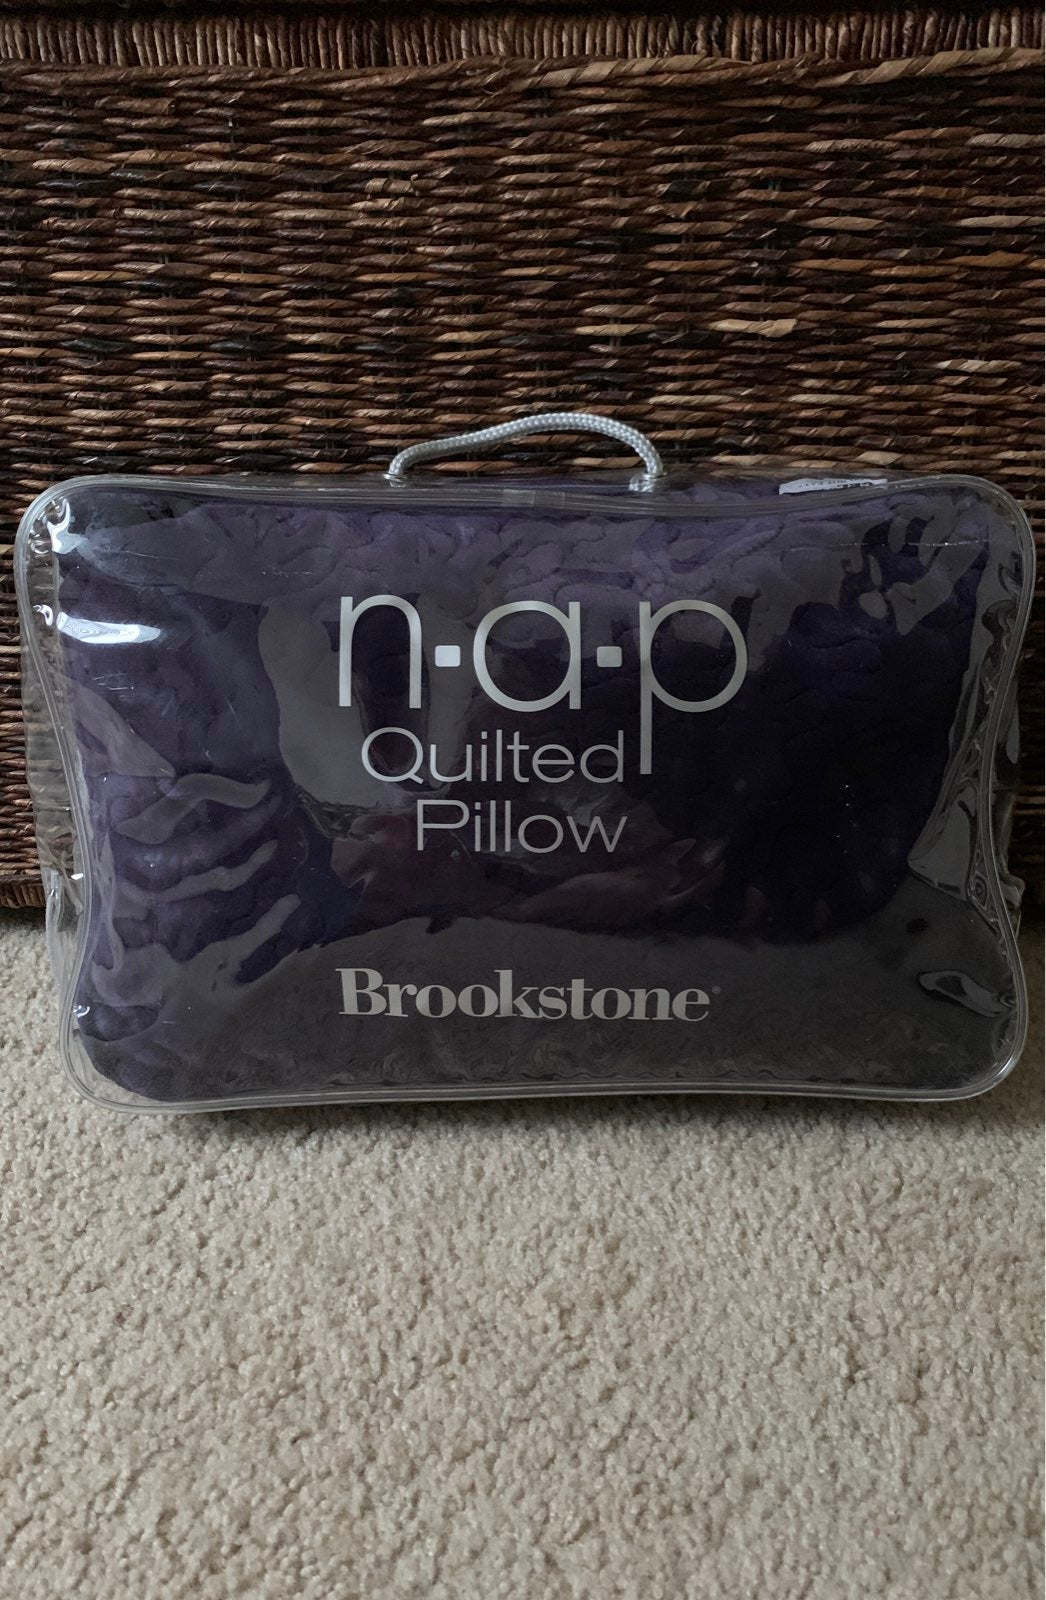 Brookstone N-A-P Quilted Pillow